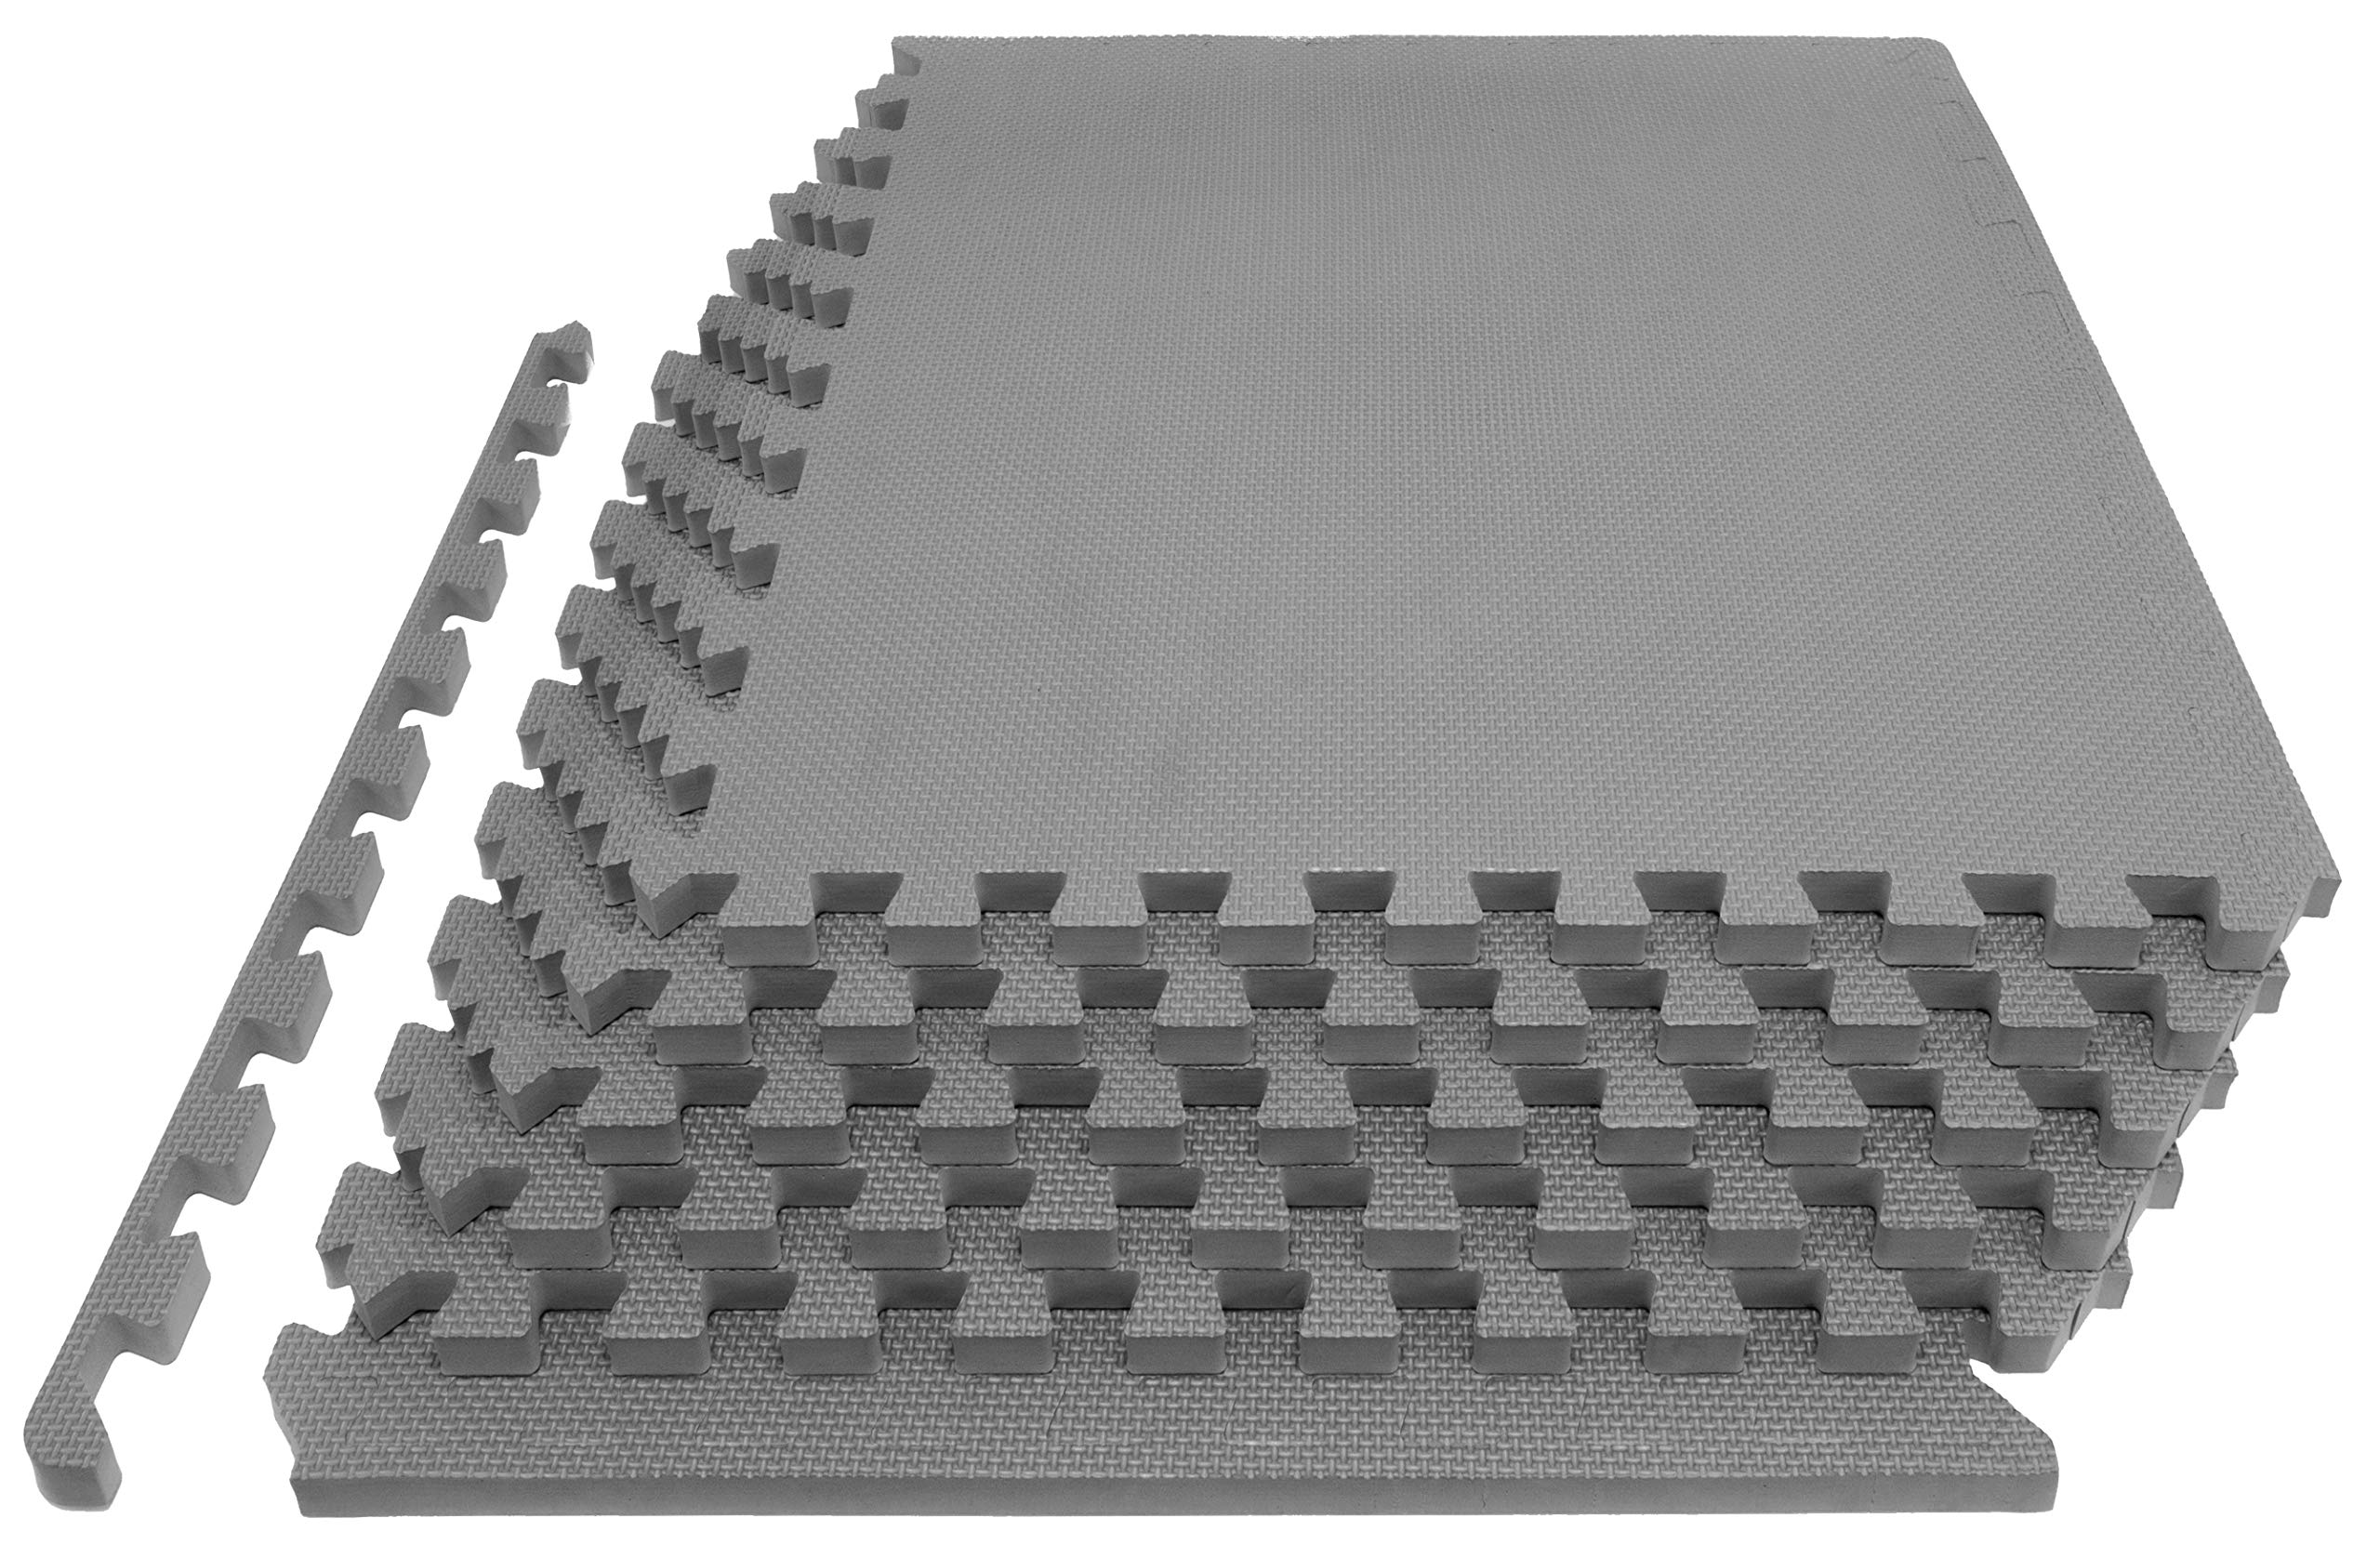 """Prosource Fit Extra Thick Puzzle Exercise Mat 1"""", EVA Foam Interlocking Tiles for Protective, Cushioned Workout Flooring for Home and Gym Equipment, Grey"""